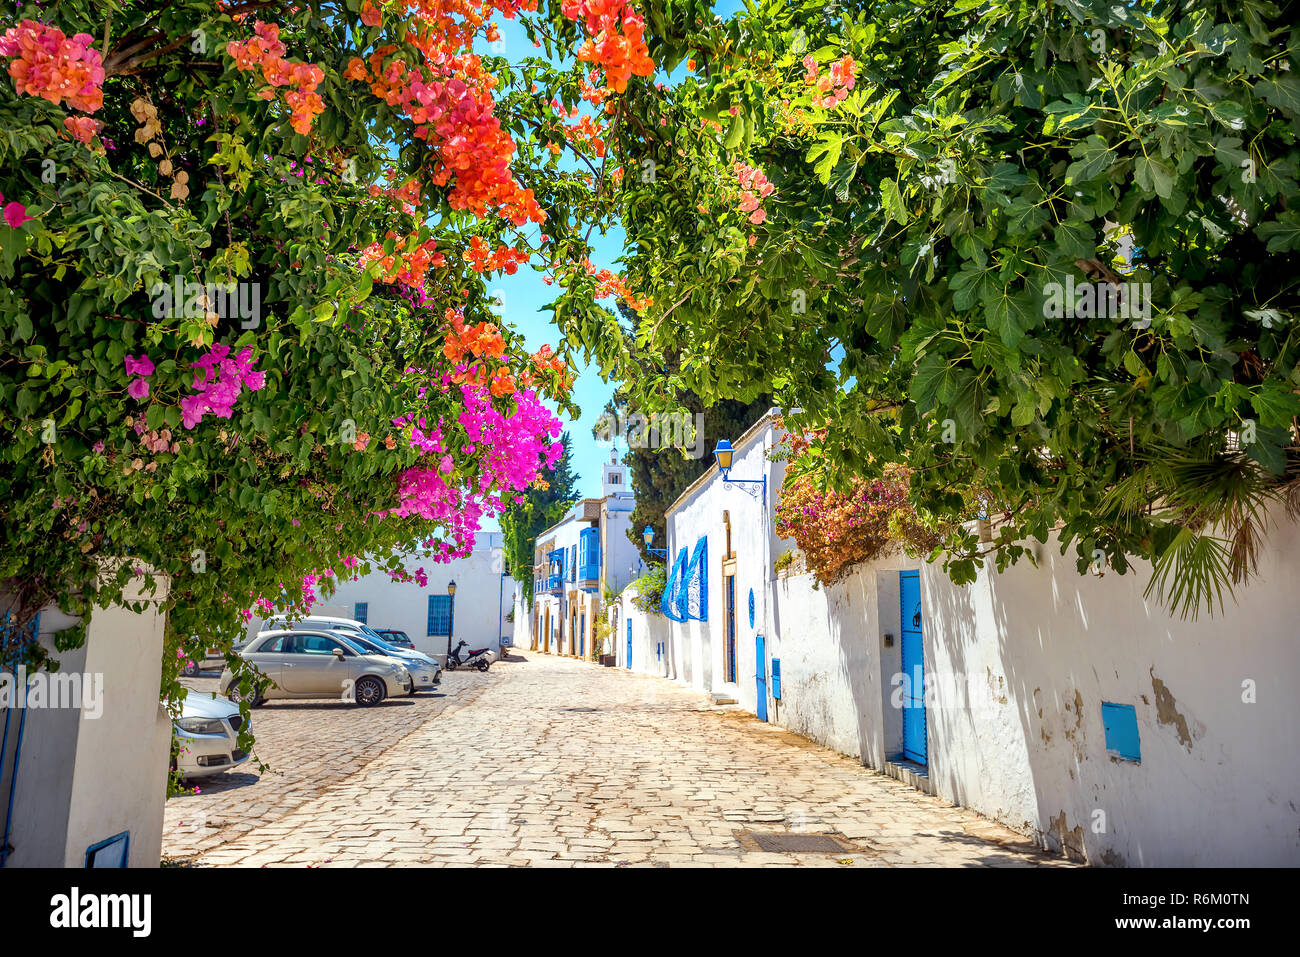 Street into focus on blossoming trees in blue and white town Sidi Bou Said. Tunisia, North Africa - Stock Image